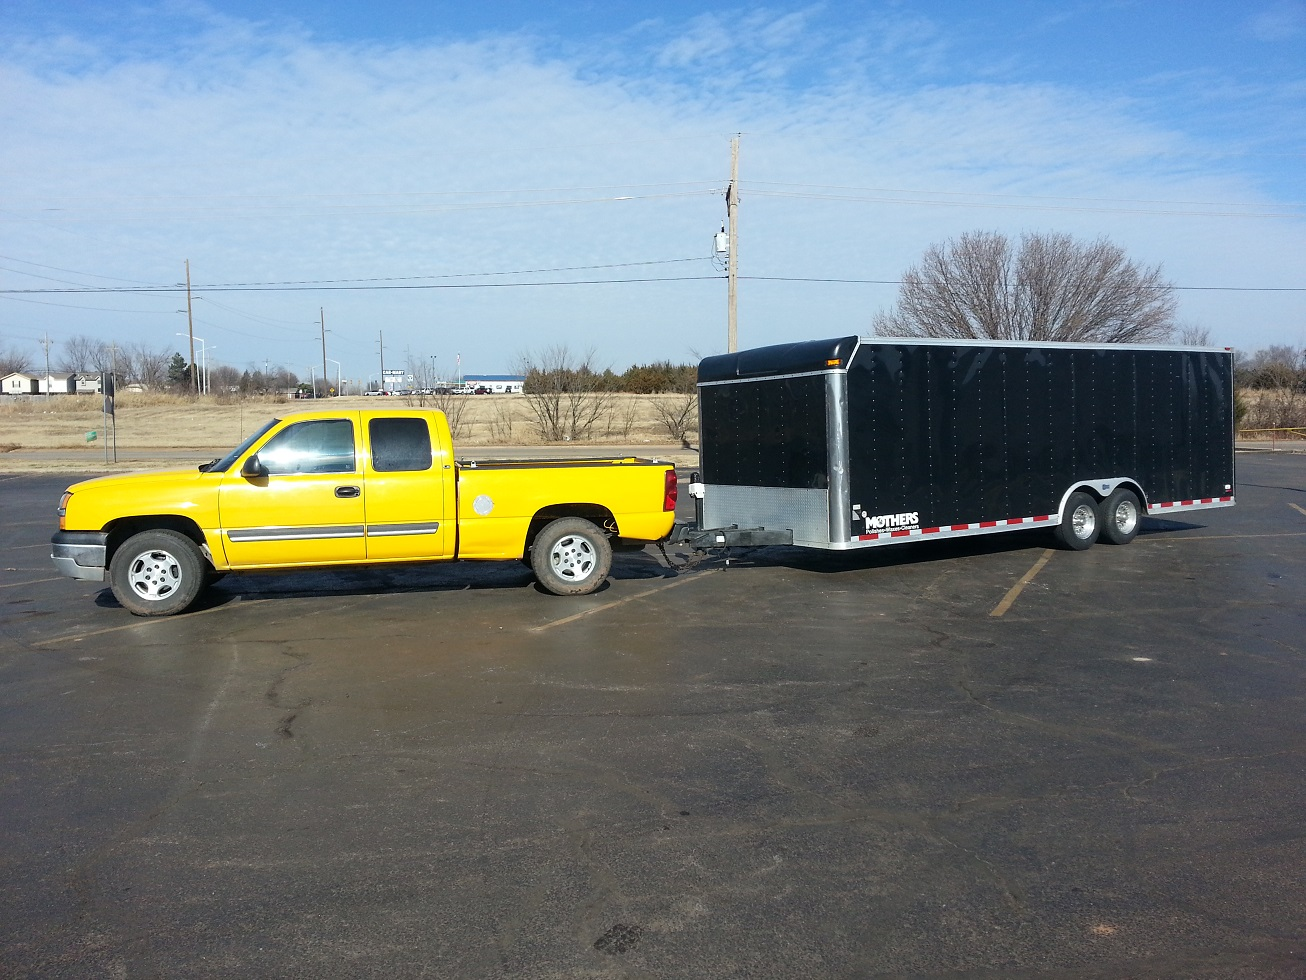 With the Silverado hooked up with the 24-foot enclosed car hauler, the results were noticed immediately. The trailer towed much better than before, all due to the adjusted valving. Thanks Rancho!